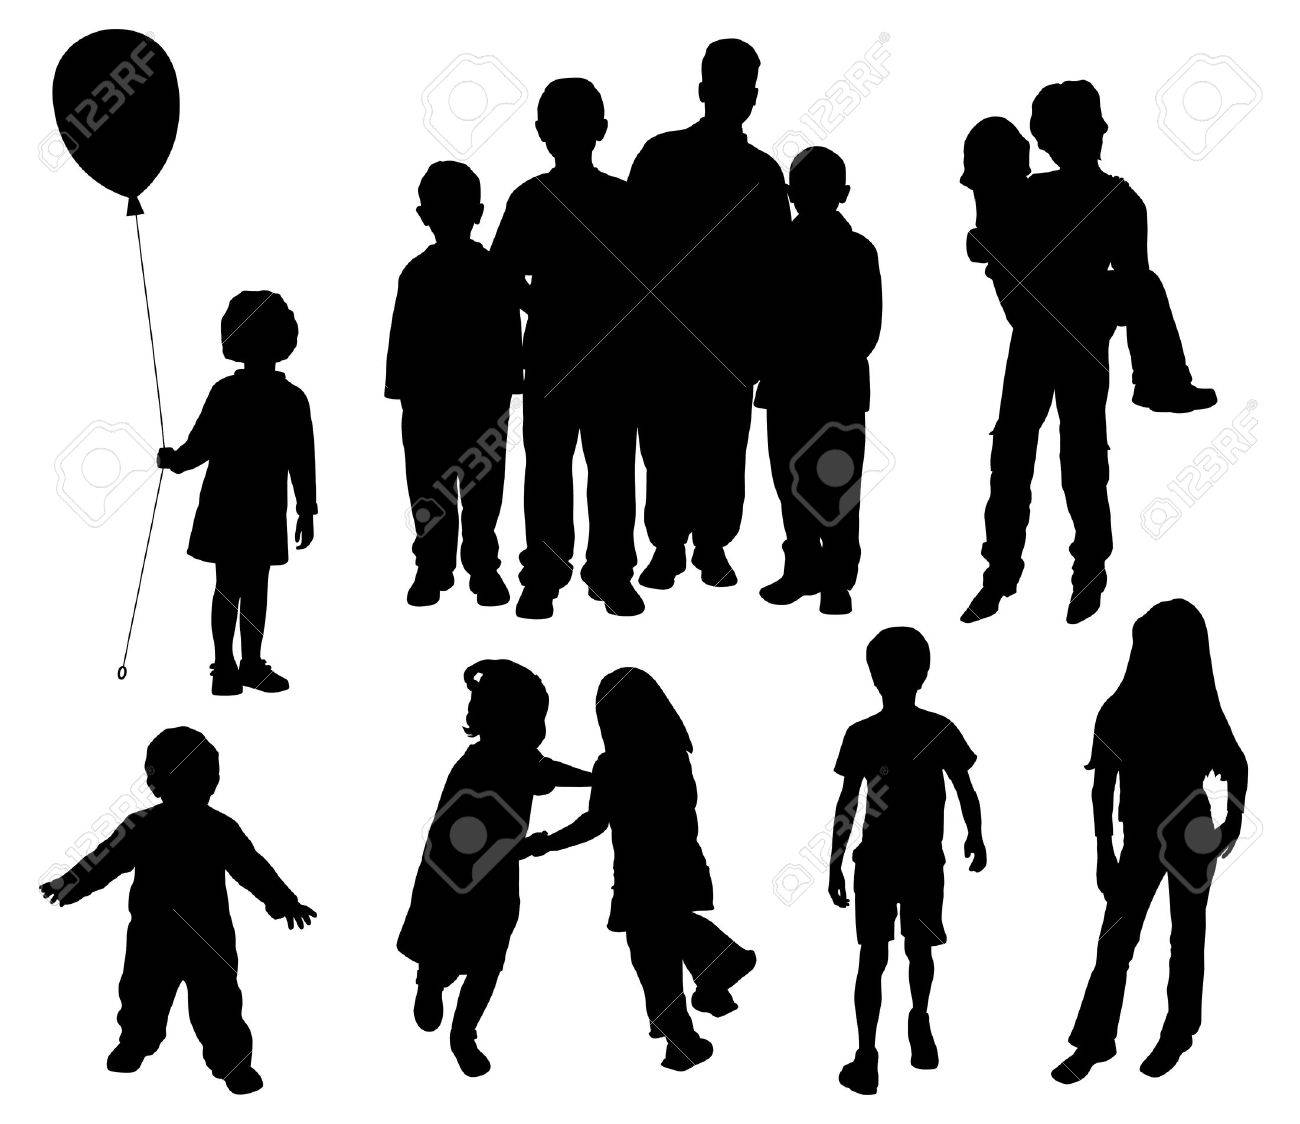 Children silhouettes Stock Vector - 4957713